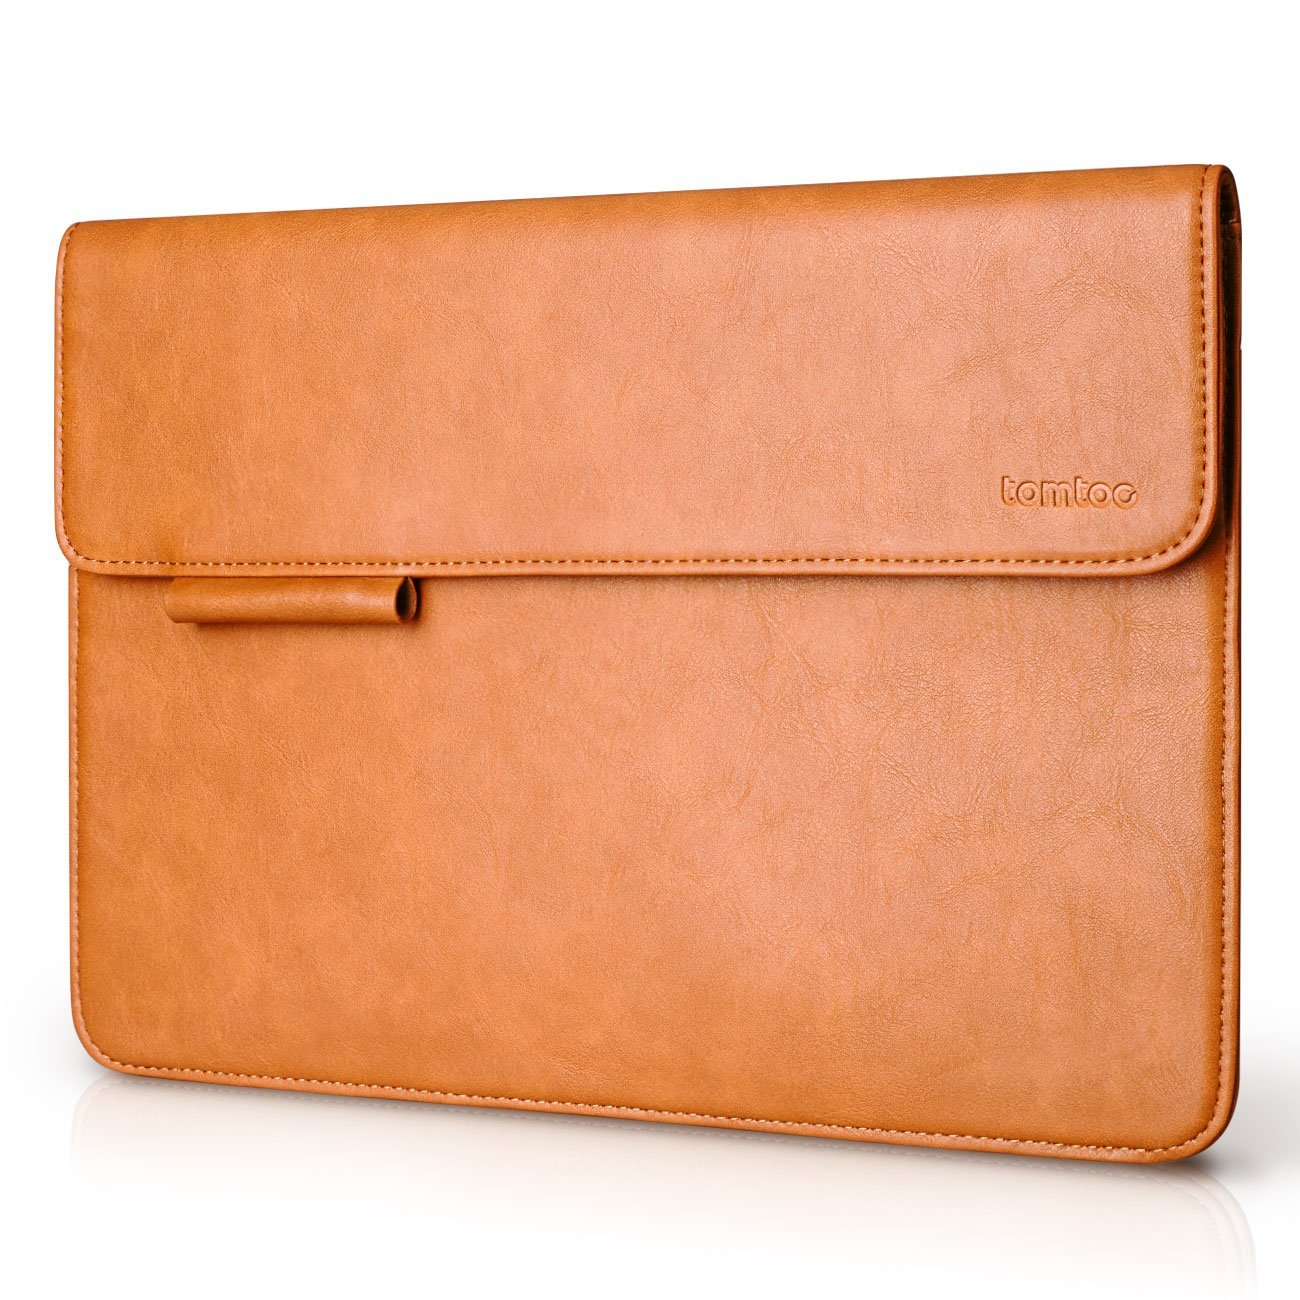 Pro 3 tablet sleeve case slim wallet pu leather protective skin pouch - Amazon Com Back To School Tomtoc Pu Leather New Surface Pro 2017 Surface Pro 4 3 Sleeve Case Cover Ultra Slim Laptop Tablet Protective Bag With